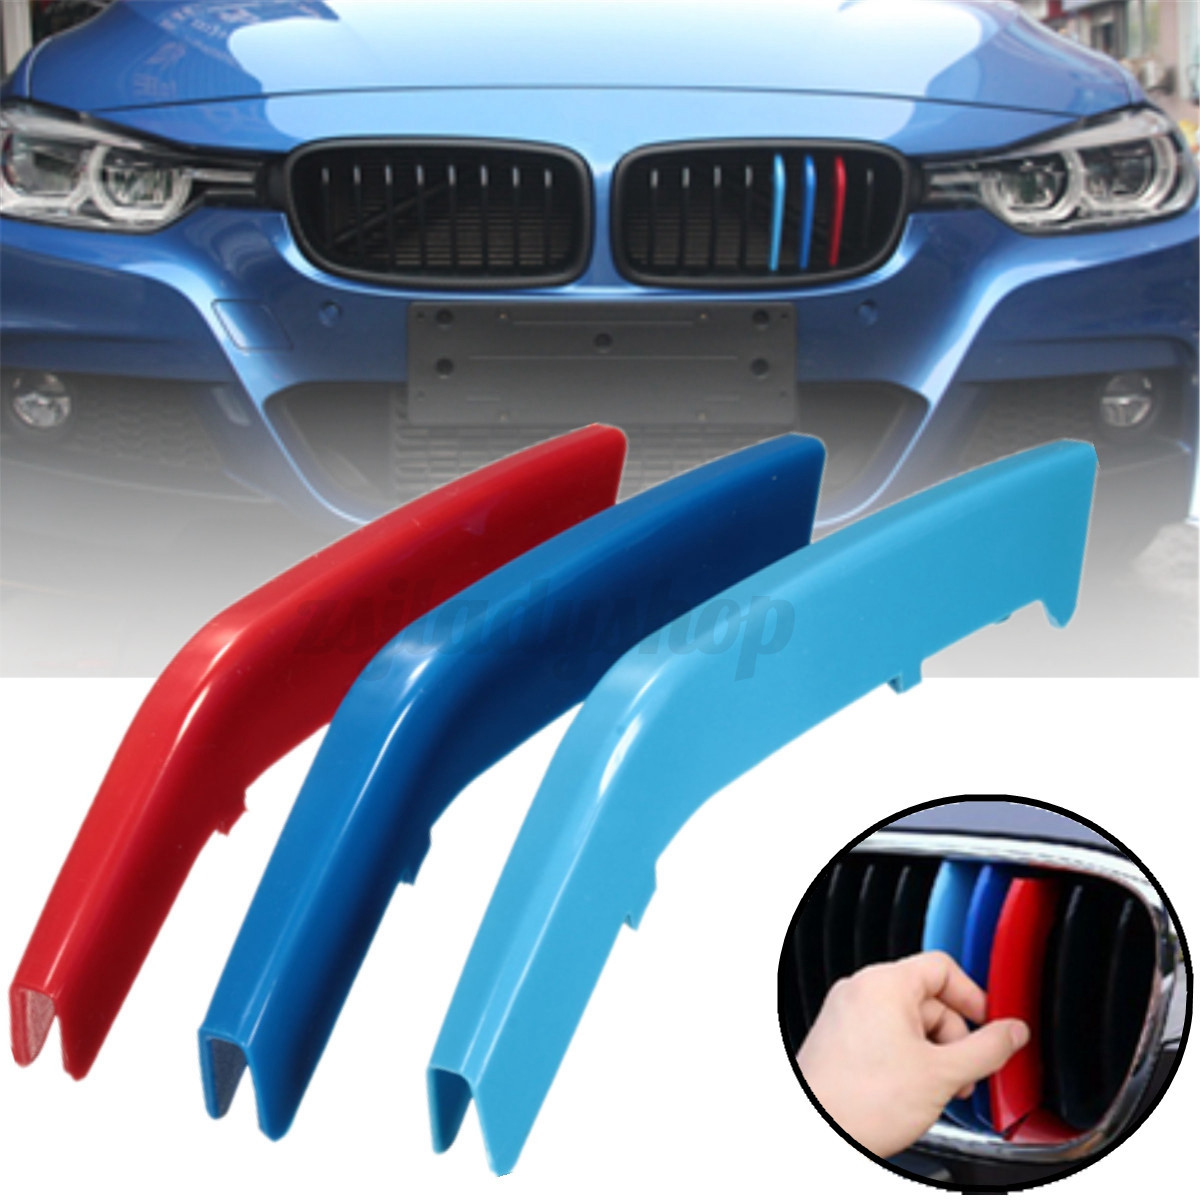 Bmw M Series Logo >> M Color ABS Kidney Grill Bar Grille Covers Decal Strip Clip For BMW 3 Series F30 | eBay